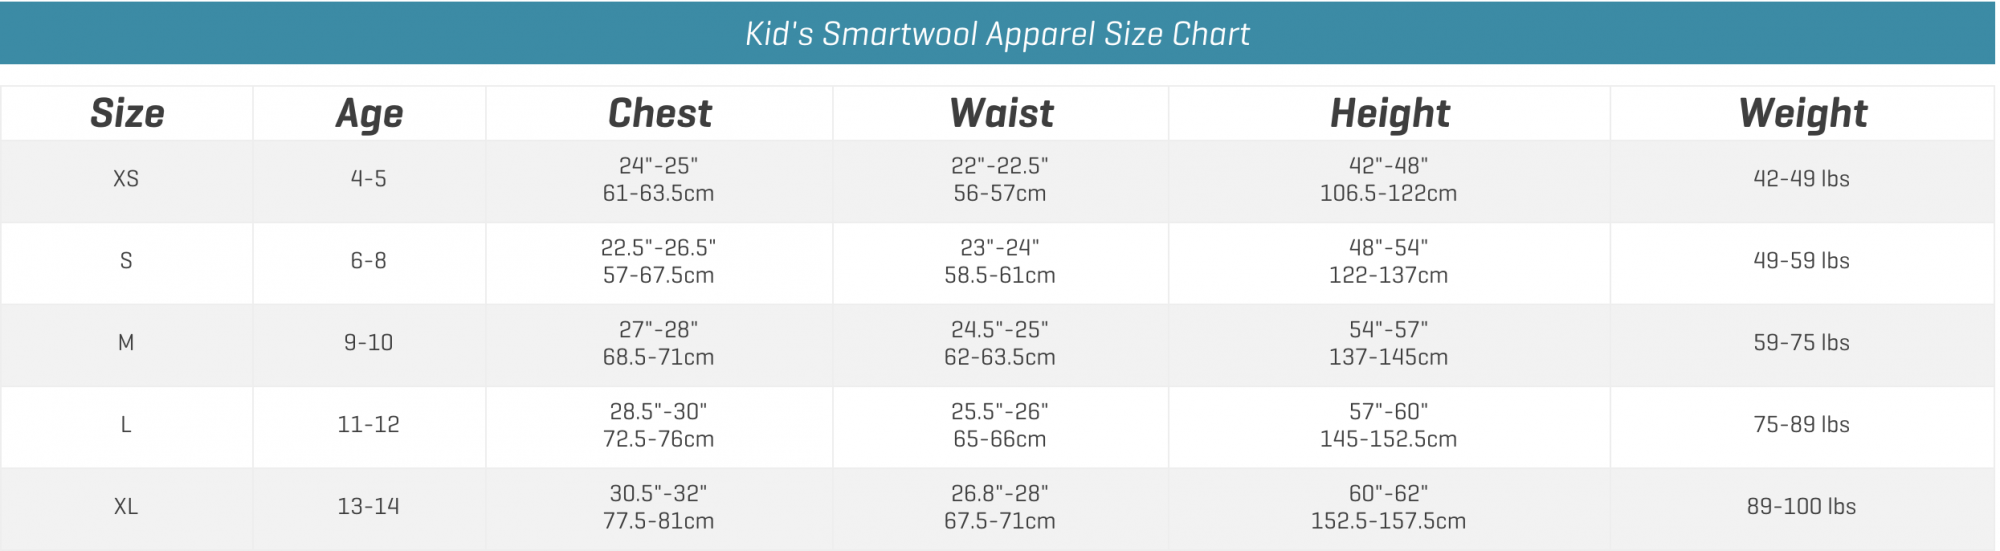 Smartwool Kid Apparel